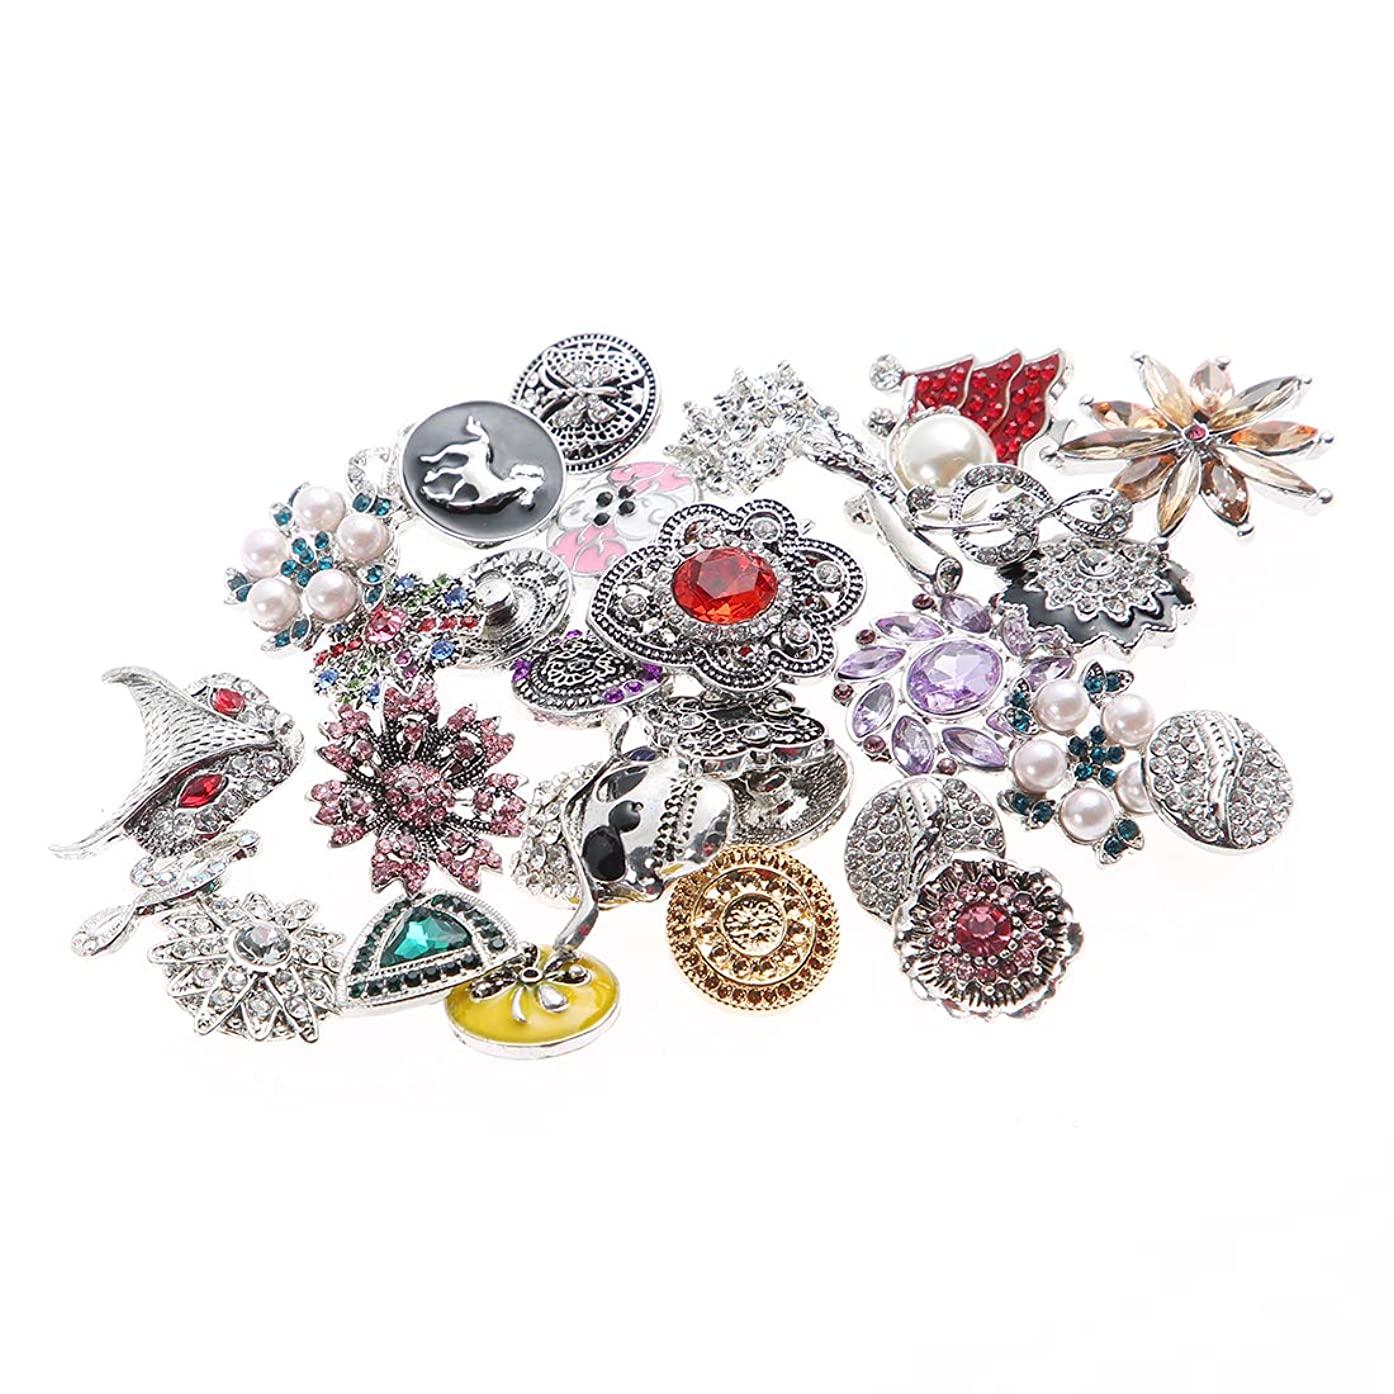 Greentime 20pcs Mixed Random Rhinestone Snap Chunk Press Button Jewelry Charms 18mm for Snap Jewelry Making